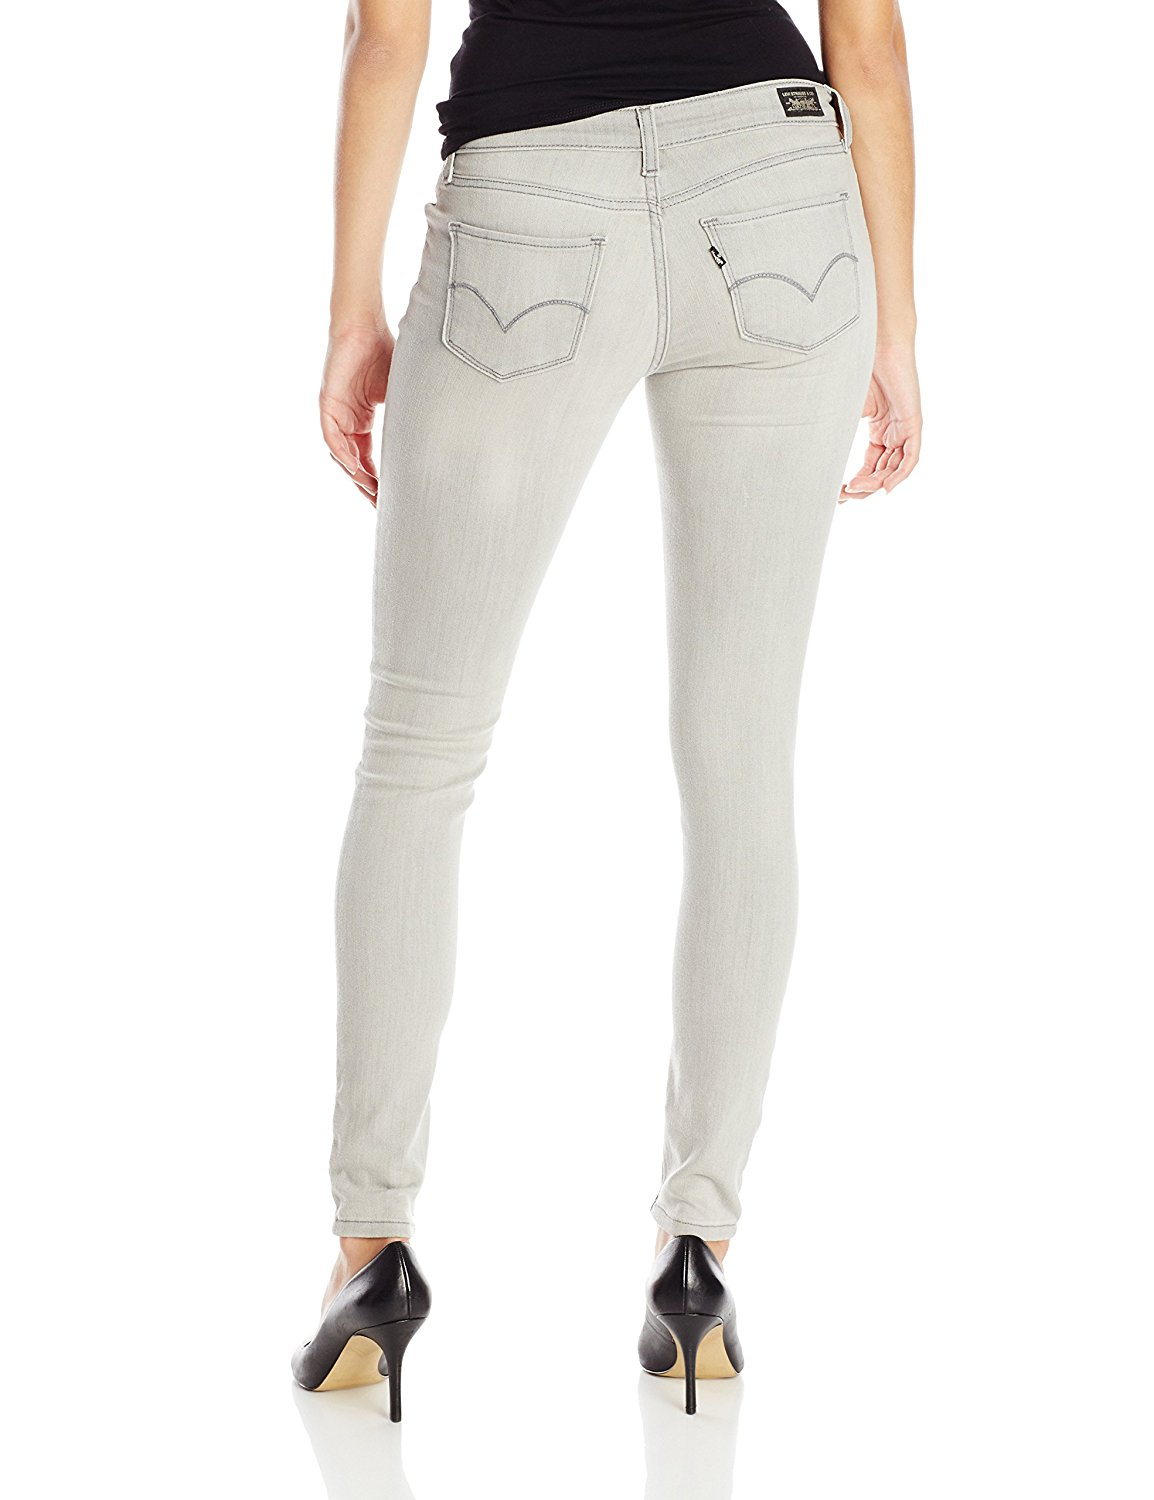 Levi's Juniors 535 Legging Jean - Ligth Grey (0214)